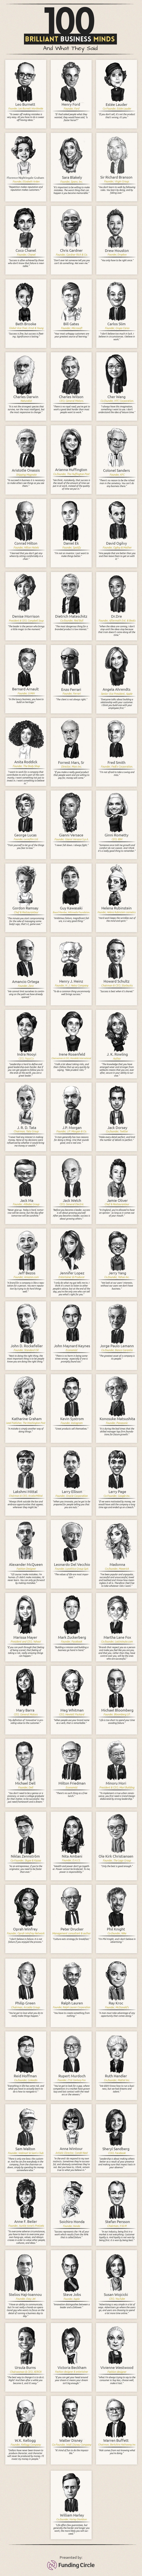 Inspirational Quotes From 100 Famous Business Leaders [Infographic]